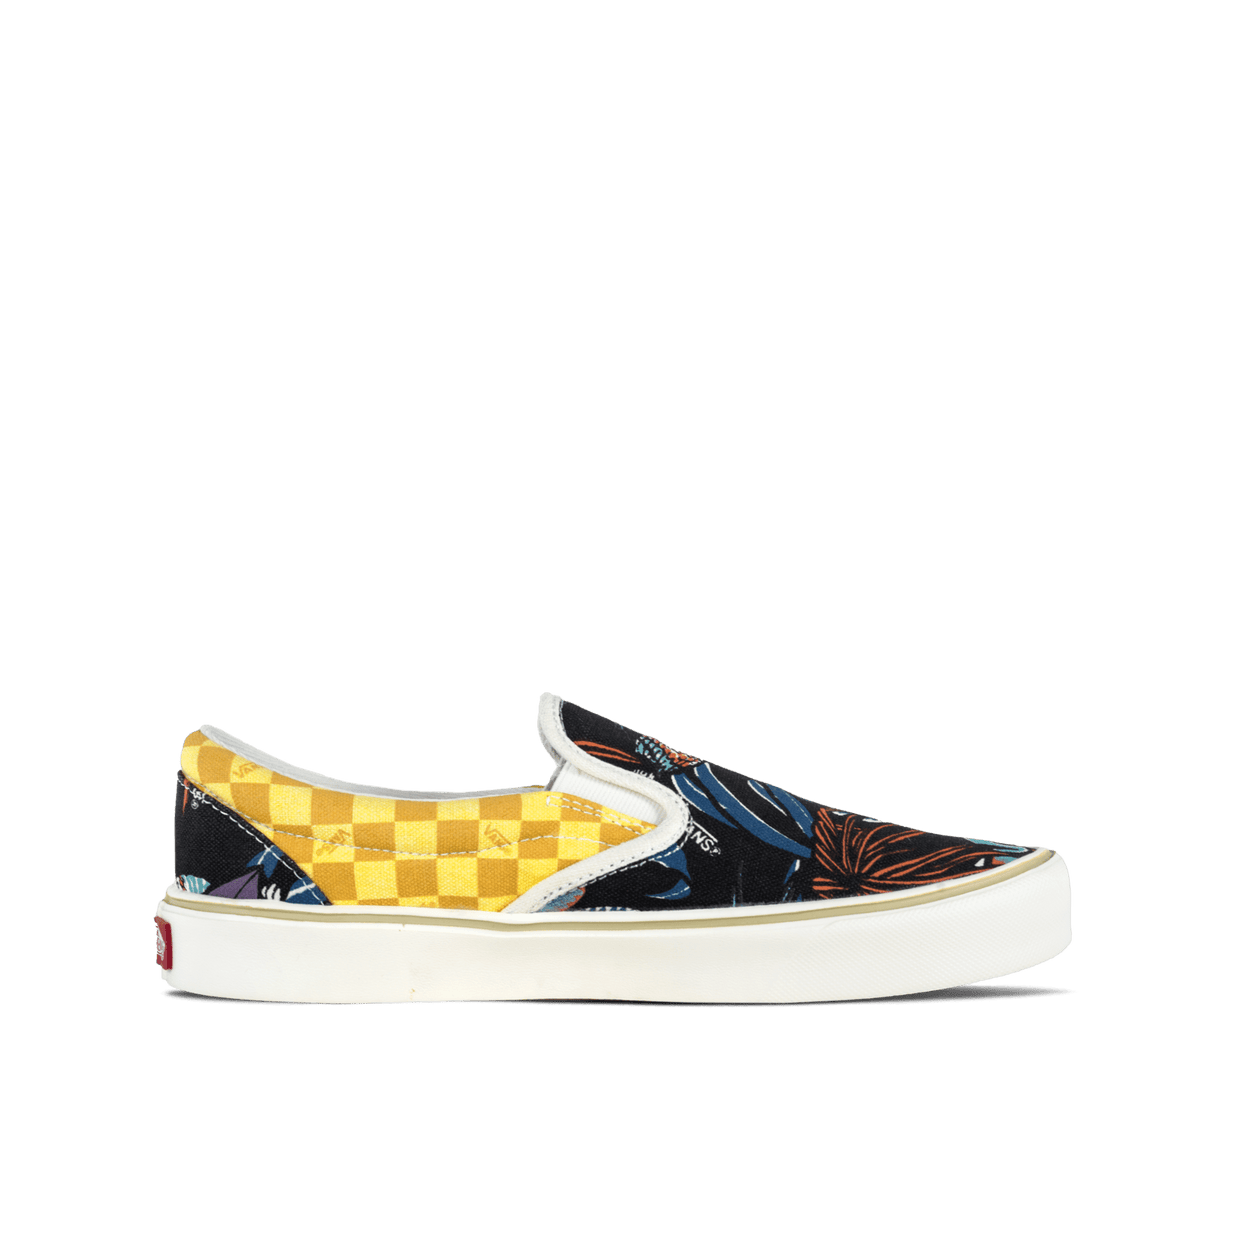 Slip-On Lite + - Black/Parrots/Check